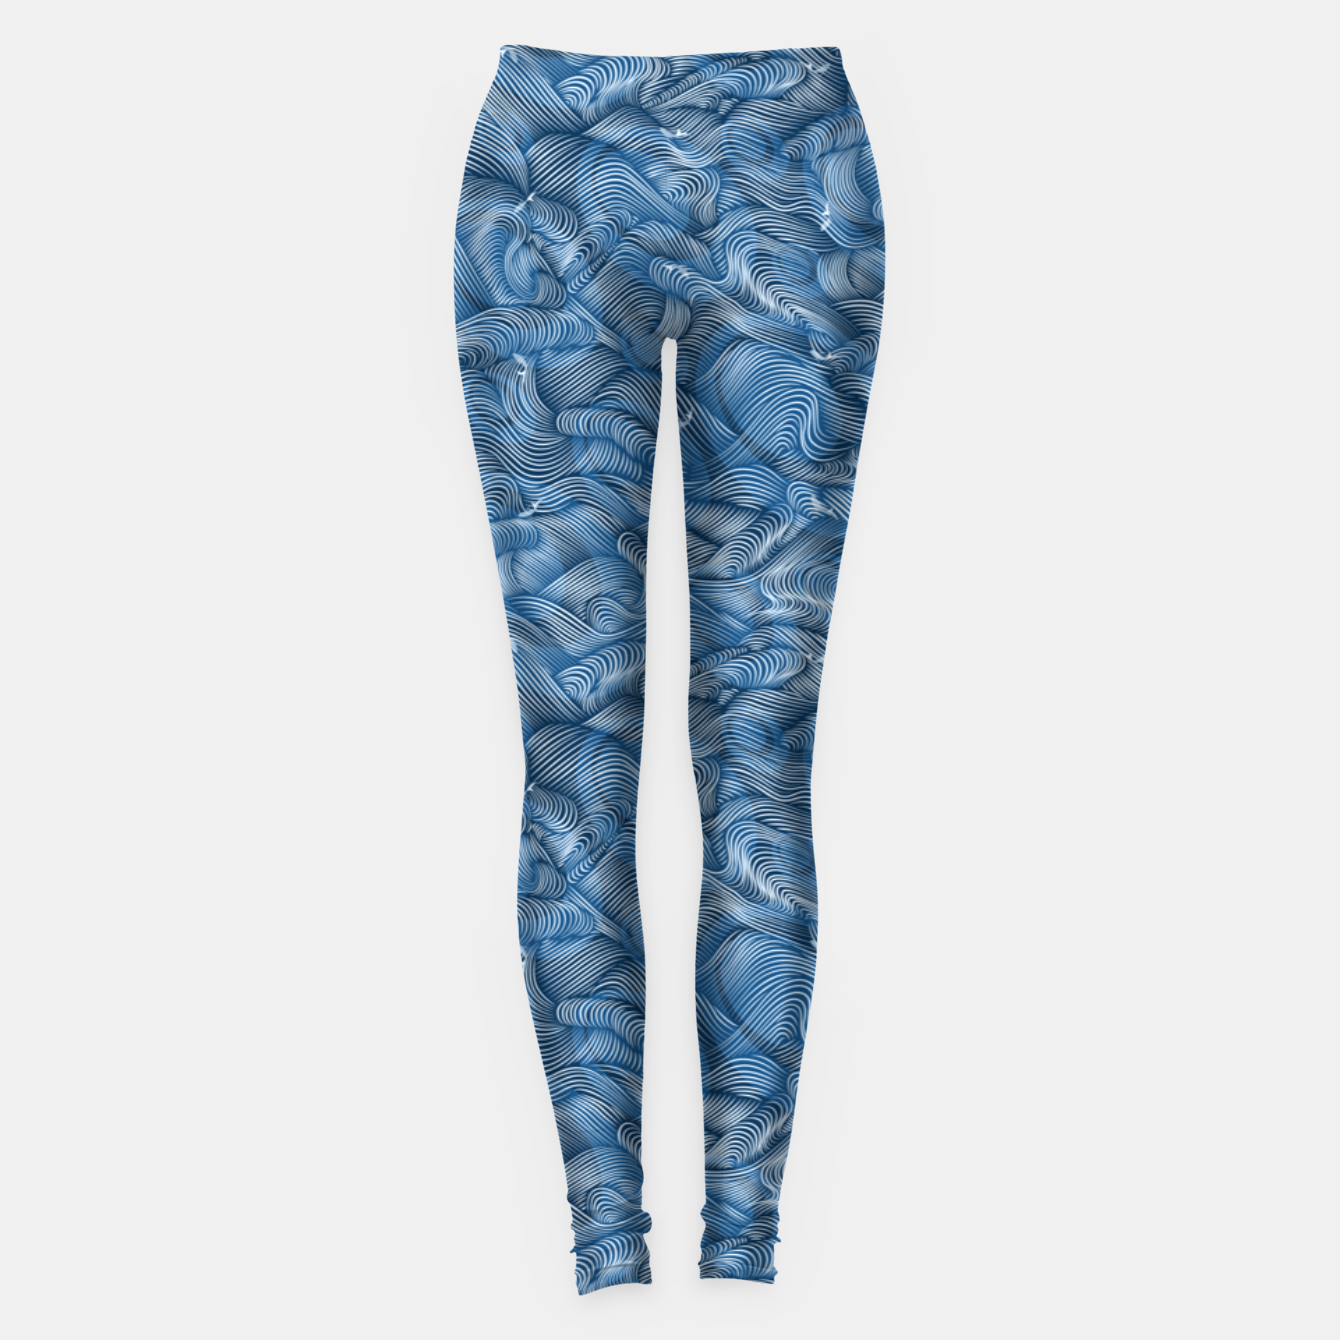 Foto Slippery Fishes Floating in the Classic Blue Waves Leggings - Live Heroes